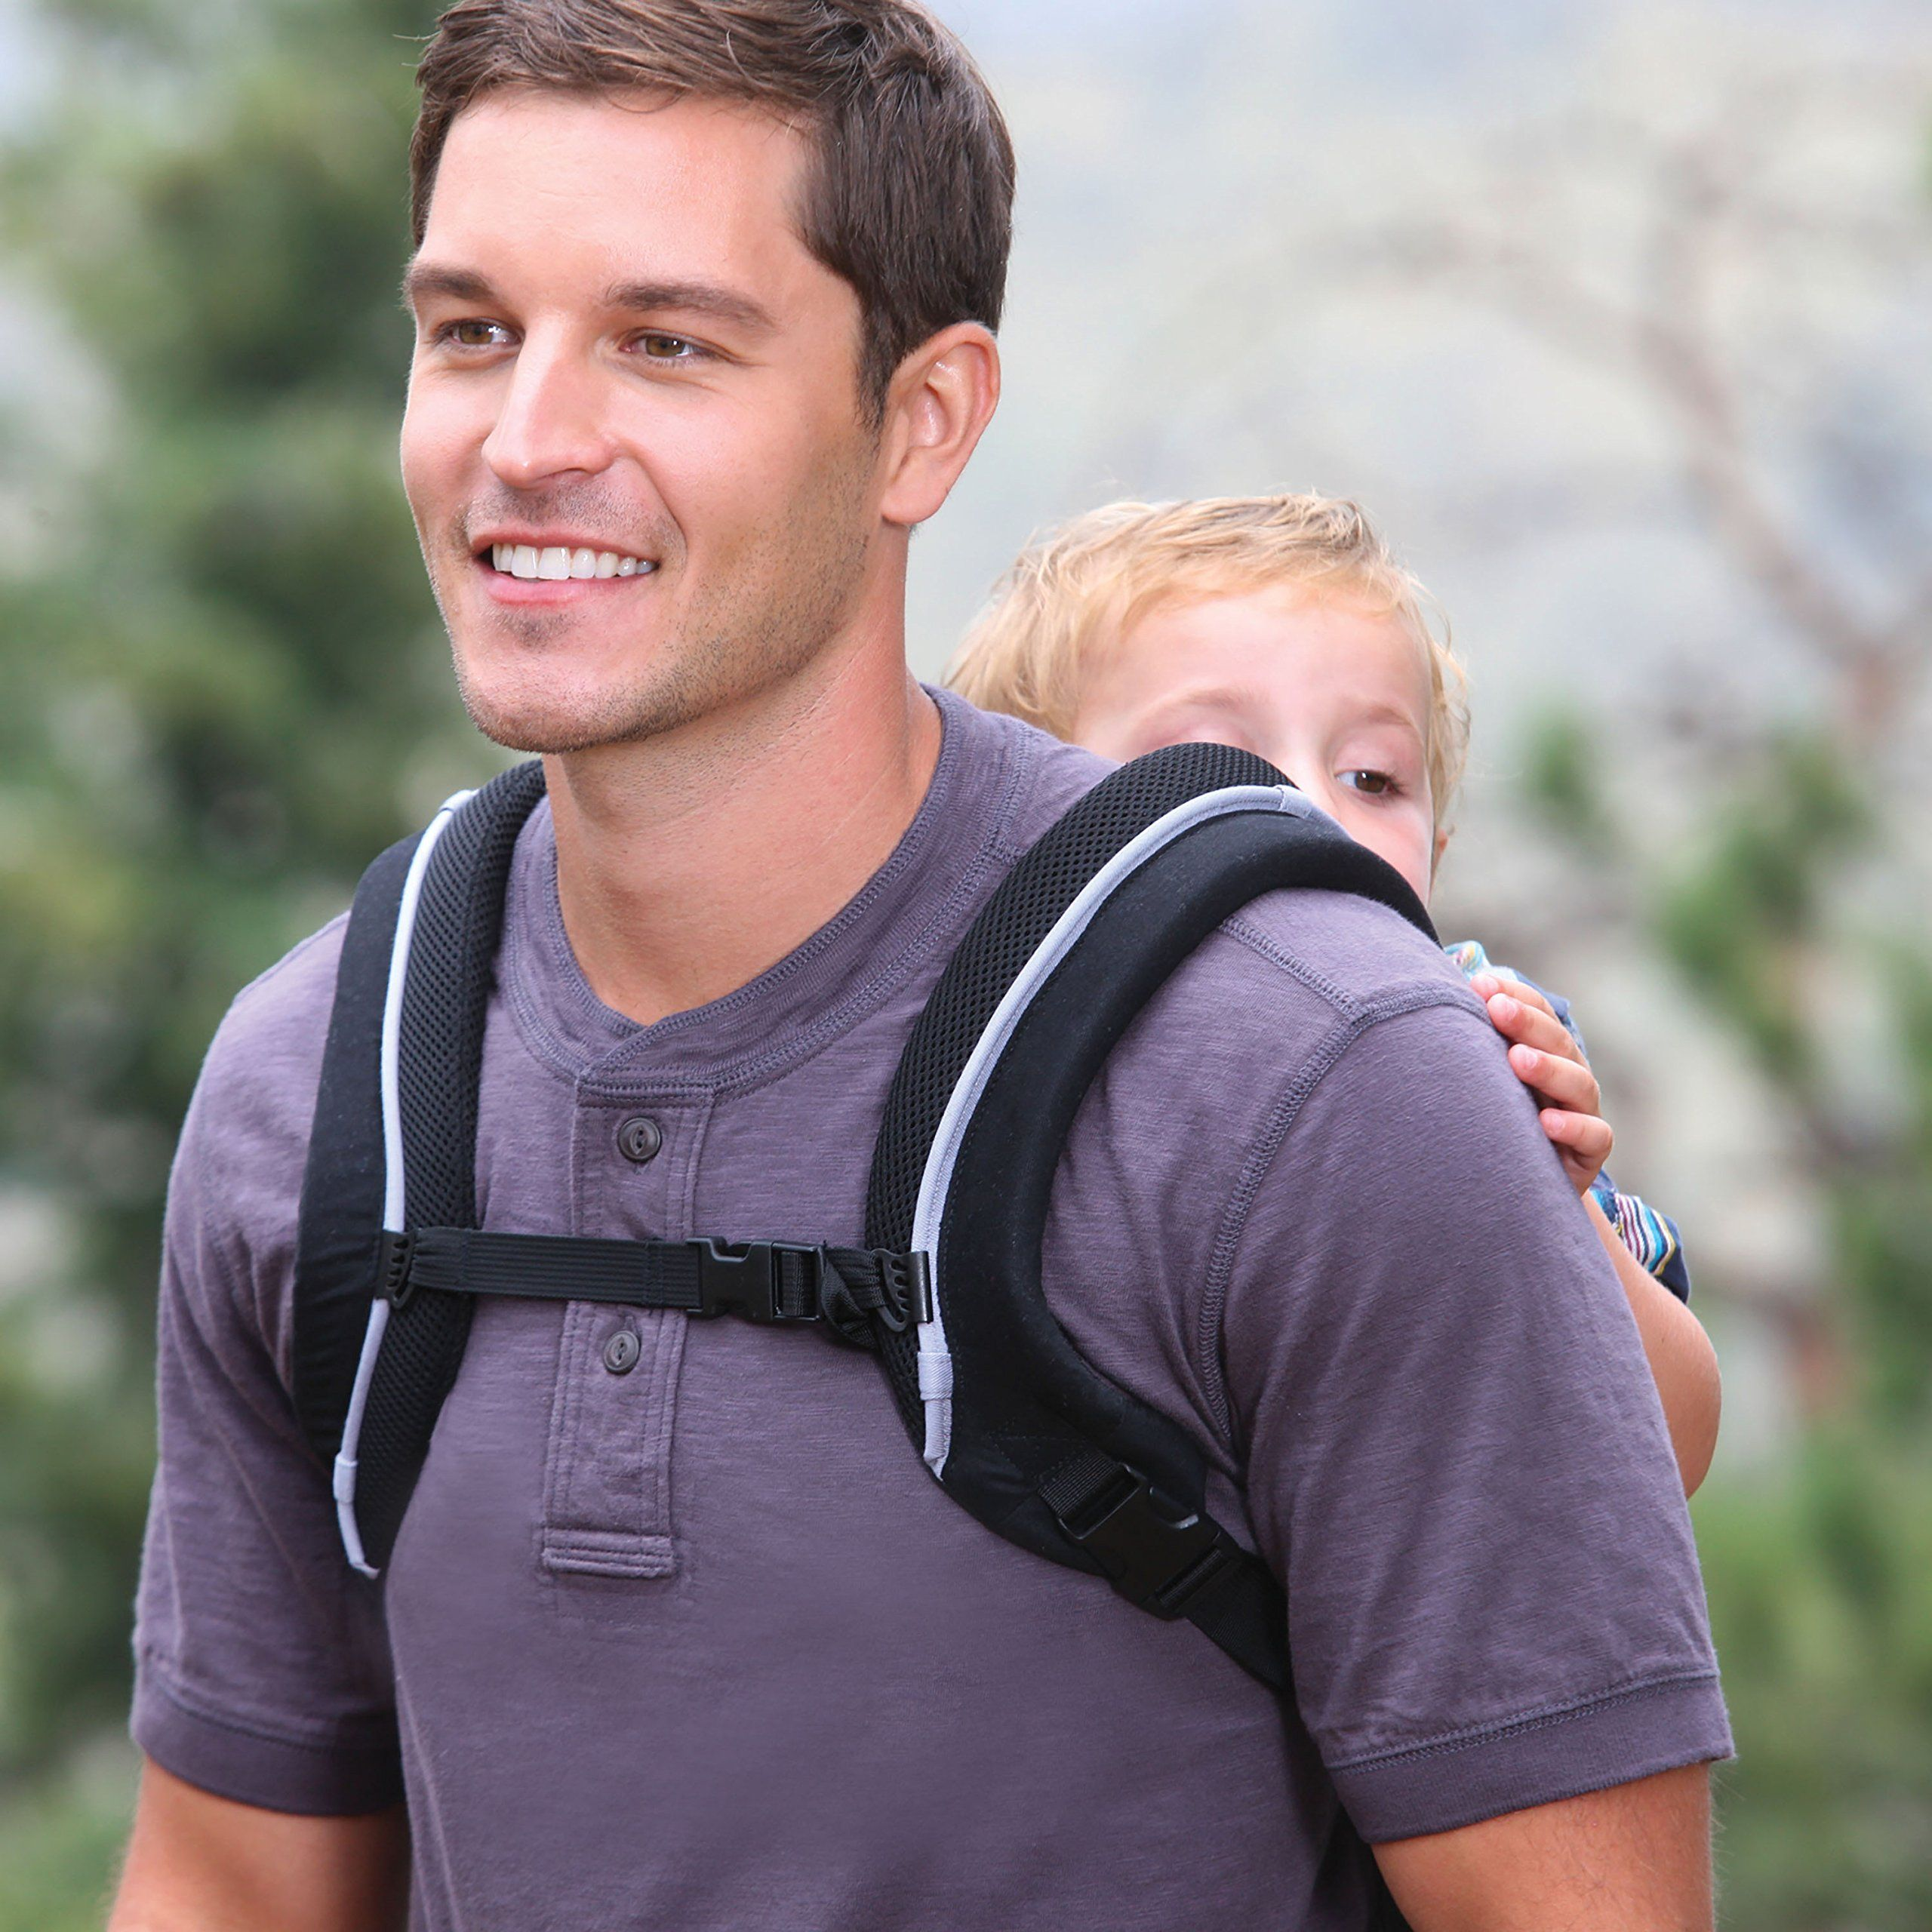 Eddie Bauer 3in1 Comfort Baby Carrier Black Find Out More About